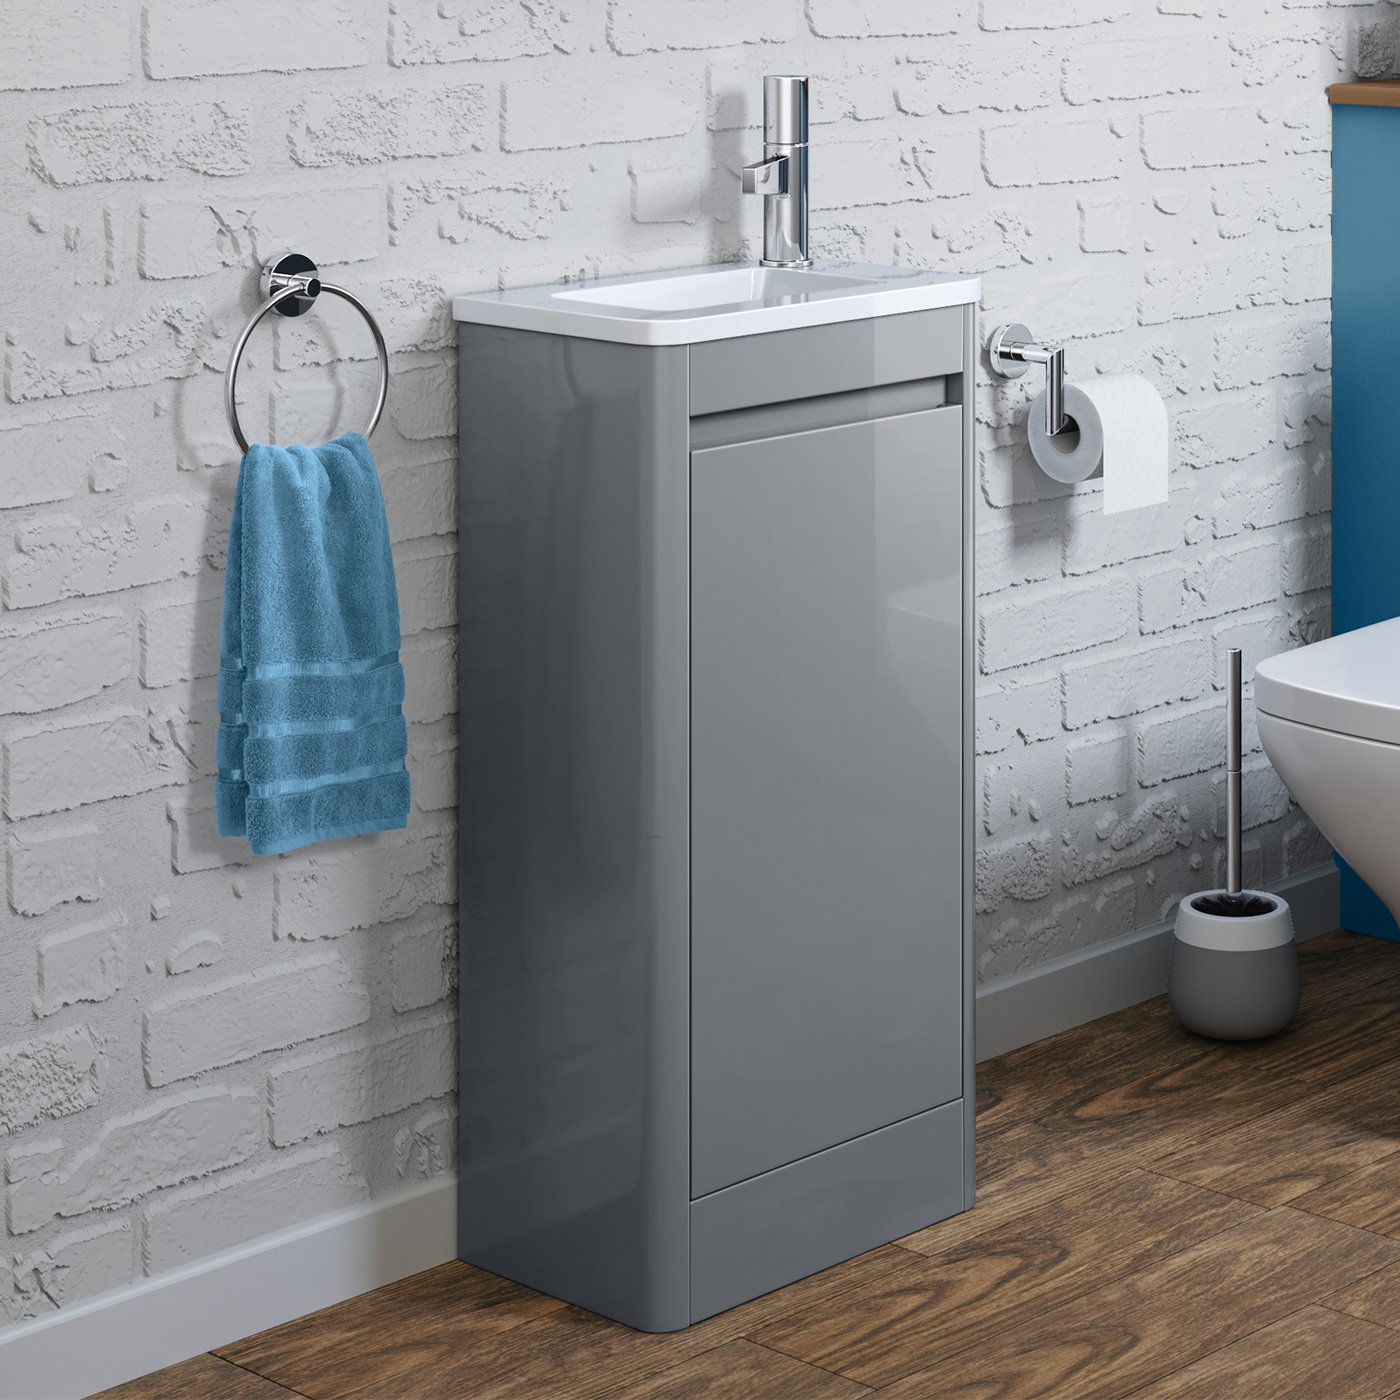 iBathUK Space Saving Gloss Grey Floor Standing Cloakroom Vanity Unit Right Hand Basin Sink Storage